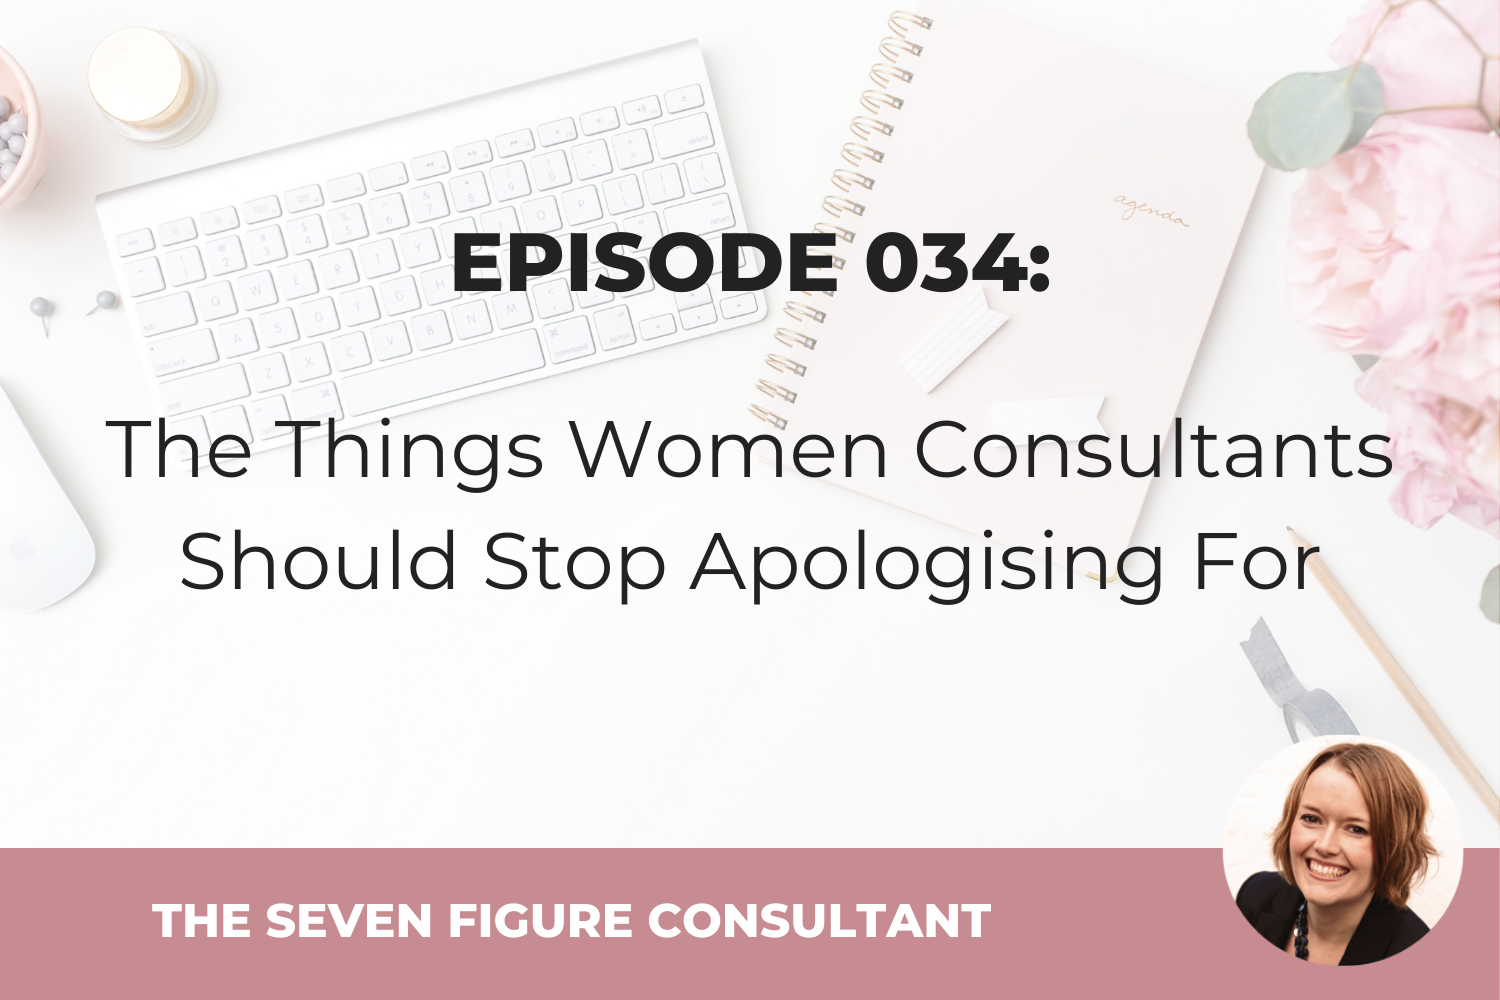 Episode 034: The Things Women Consultants Should Stop Apologising For